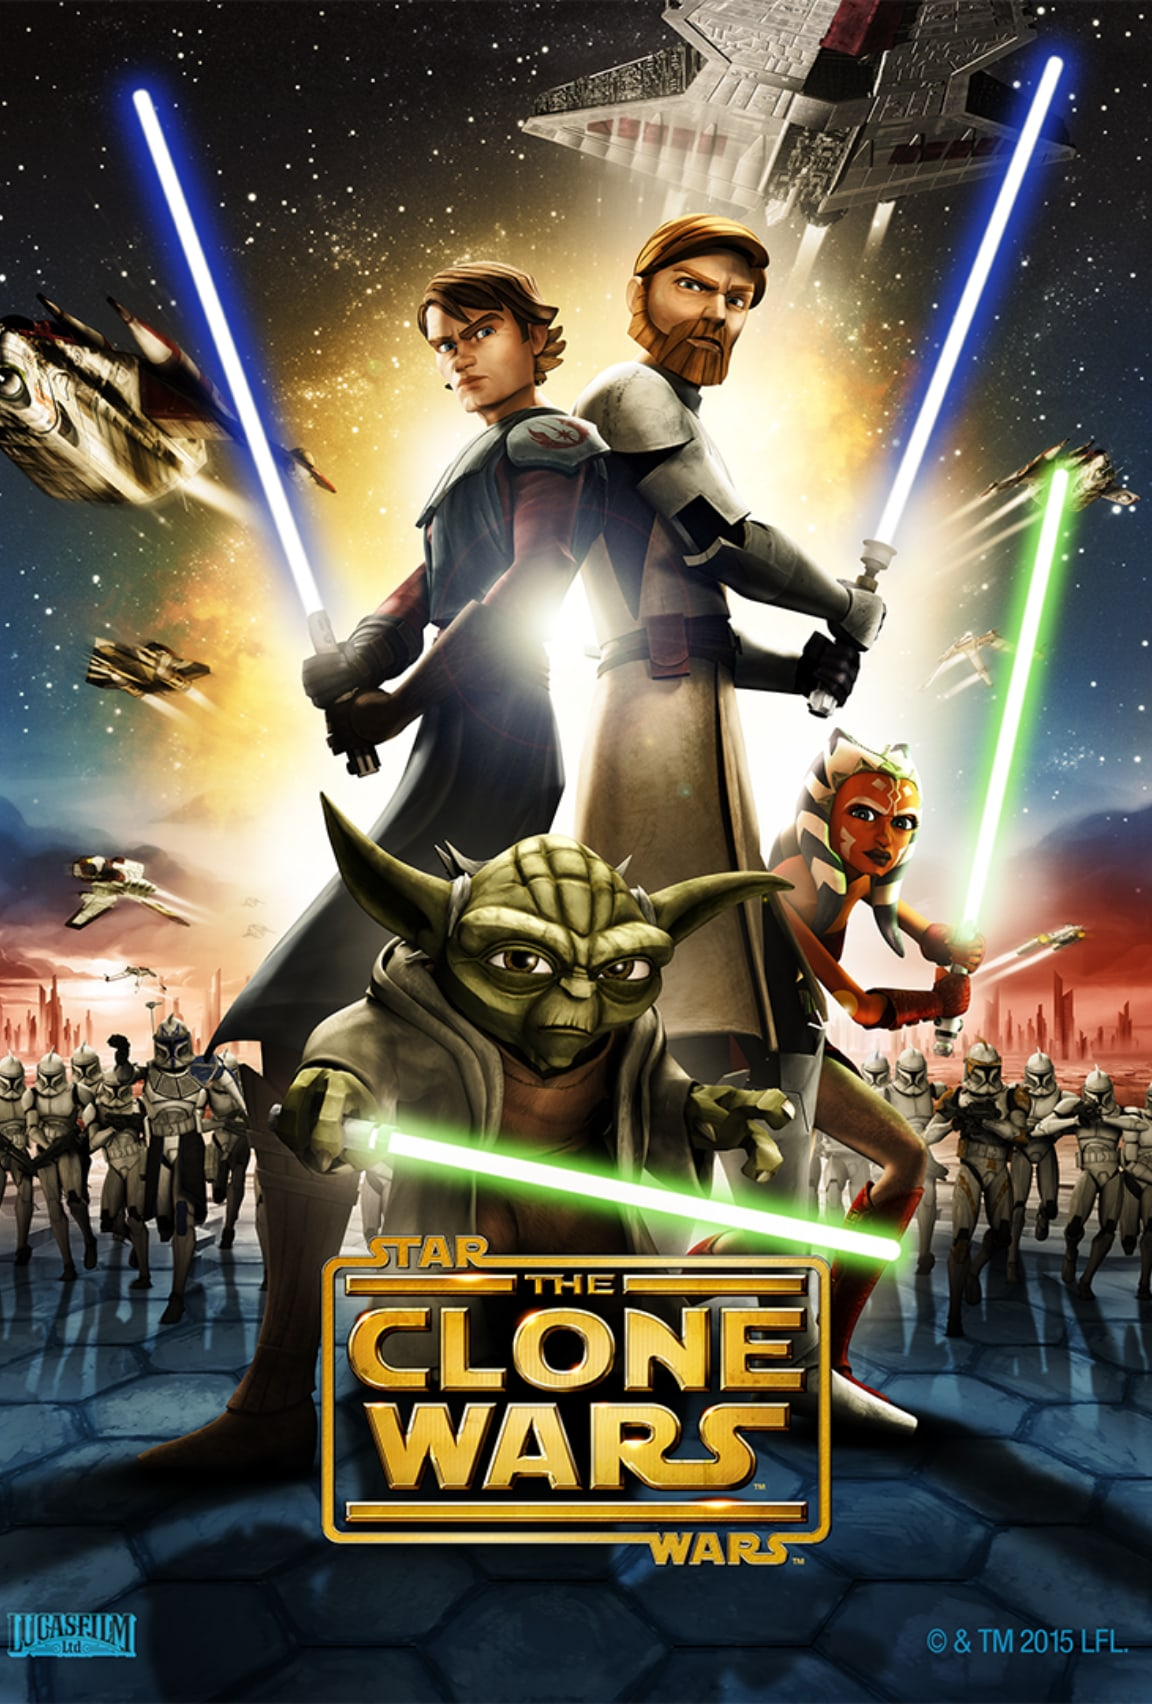 Star Wars: The Clone Wars on Disney+